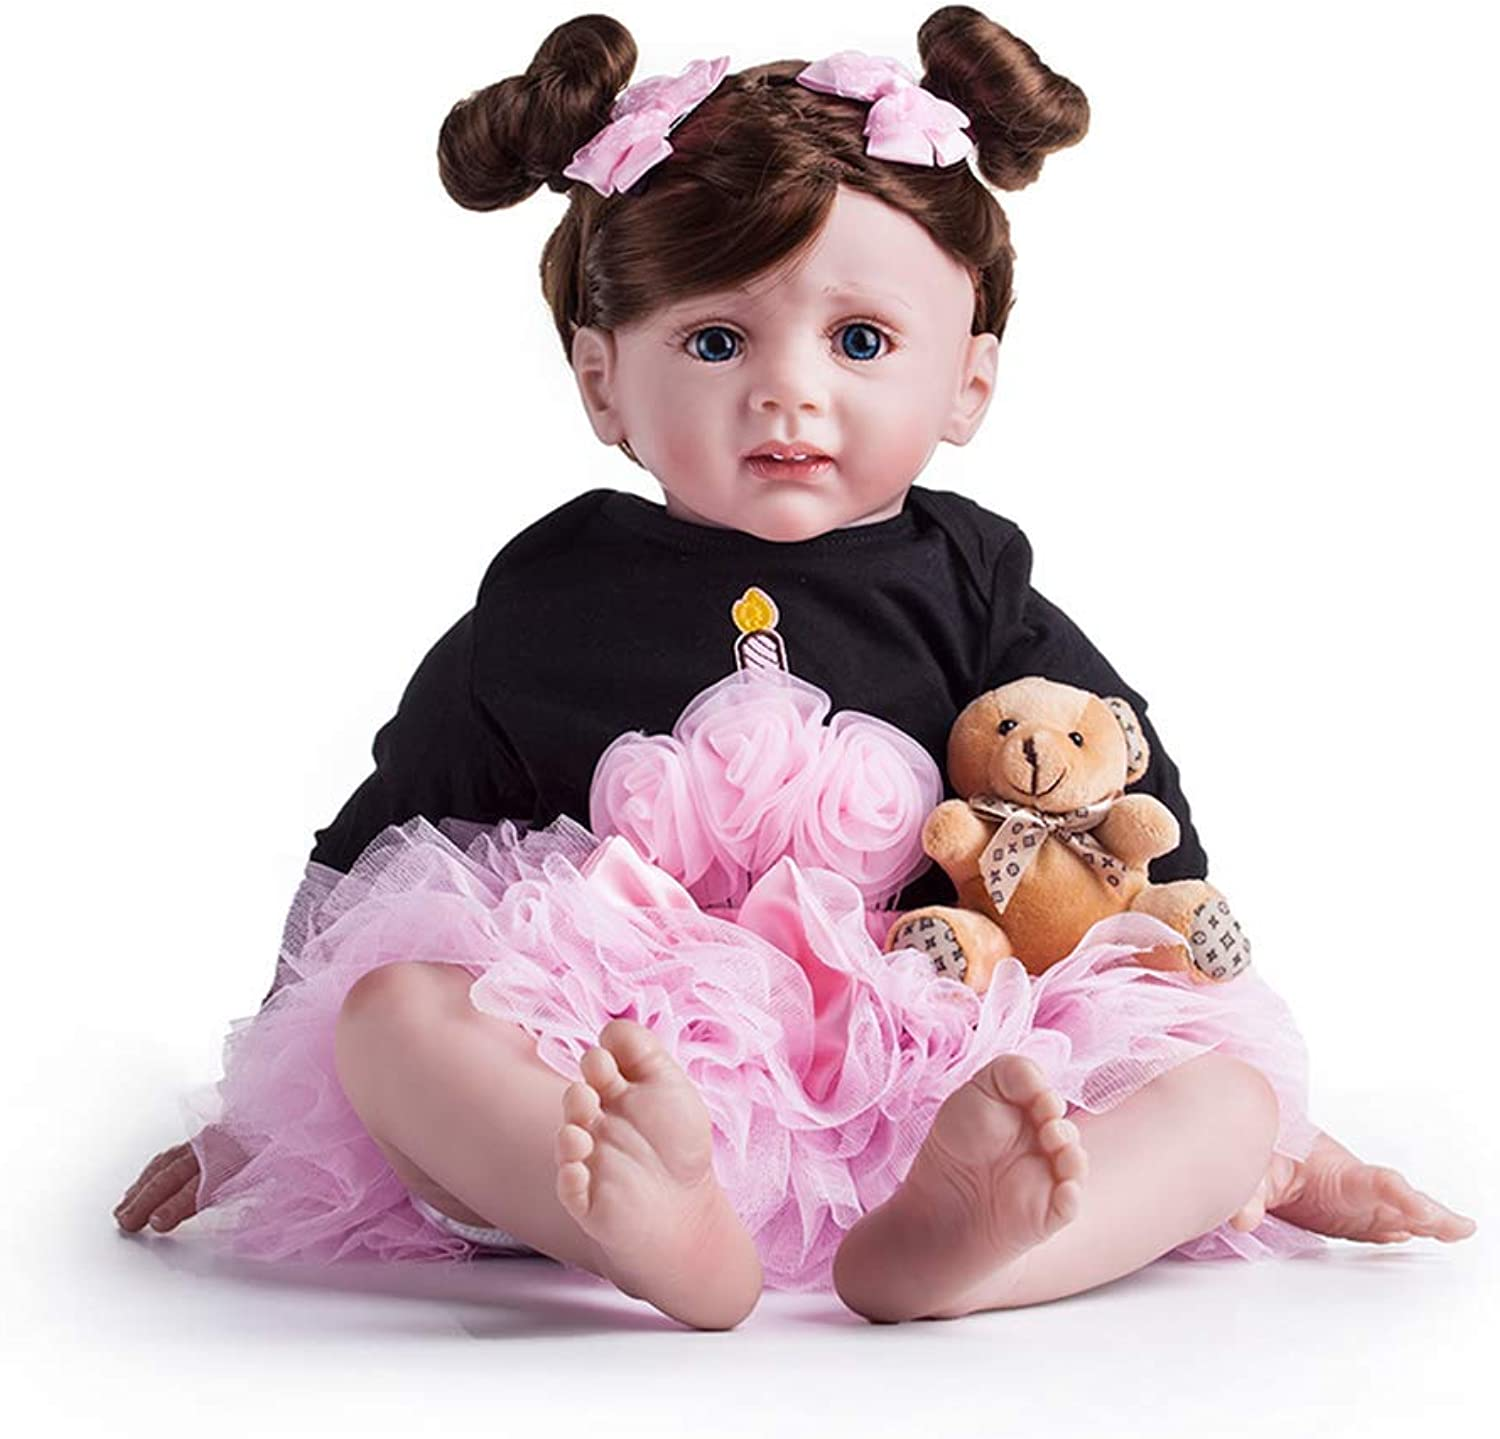 Minsong 60cm Baby Princess Girl Doll,Cloth Cotton Body Silicone Head and Limbs Realistic Baby Doll with Flower Hairstyle Princsee Dress (bluee eyes)